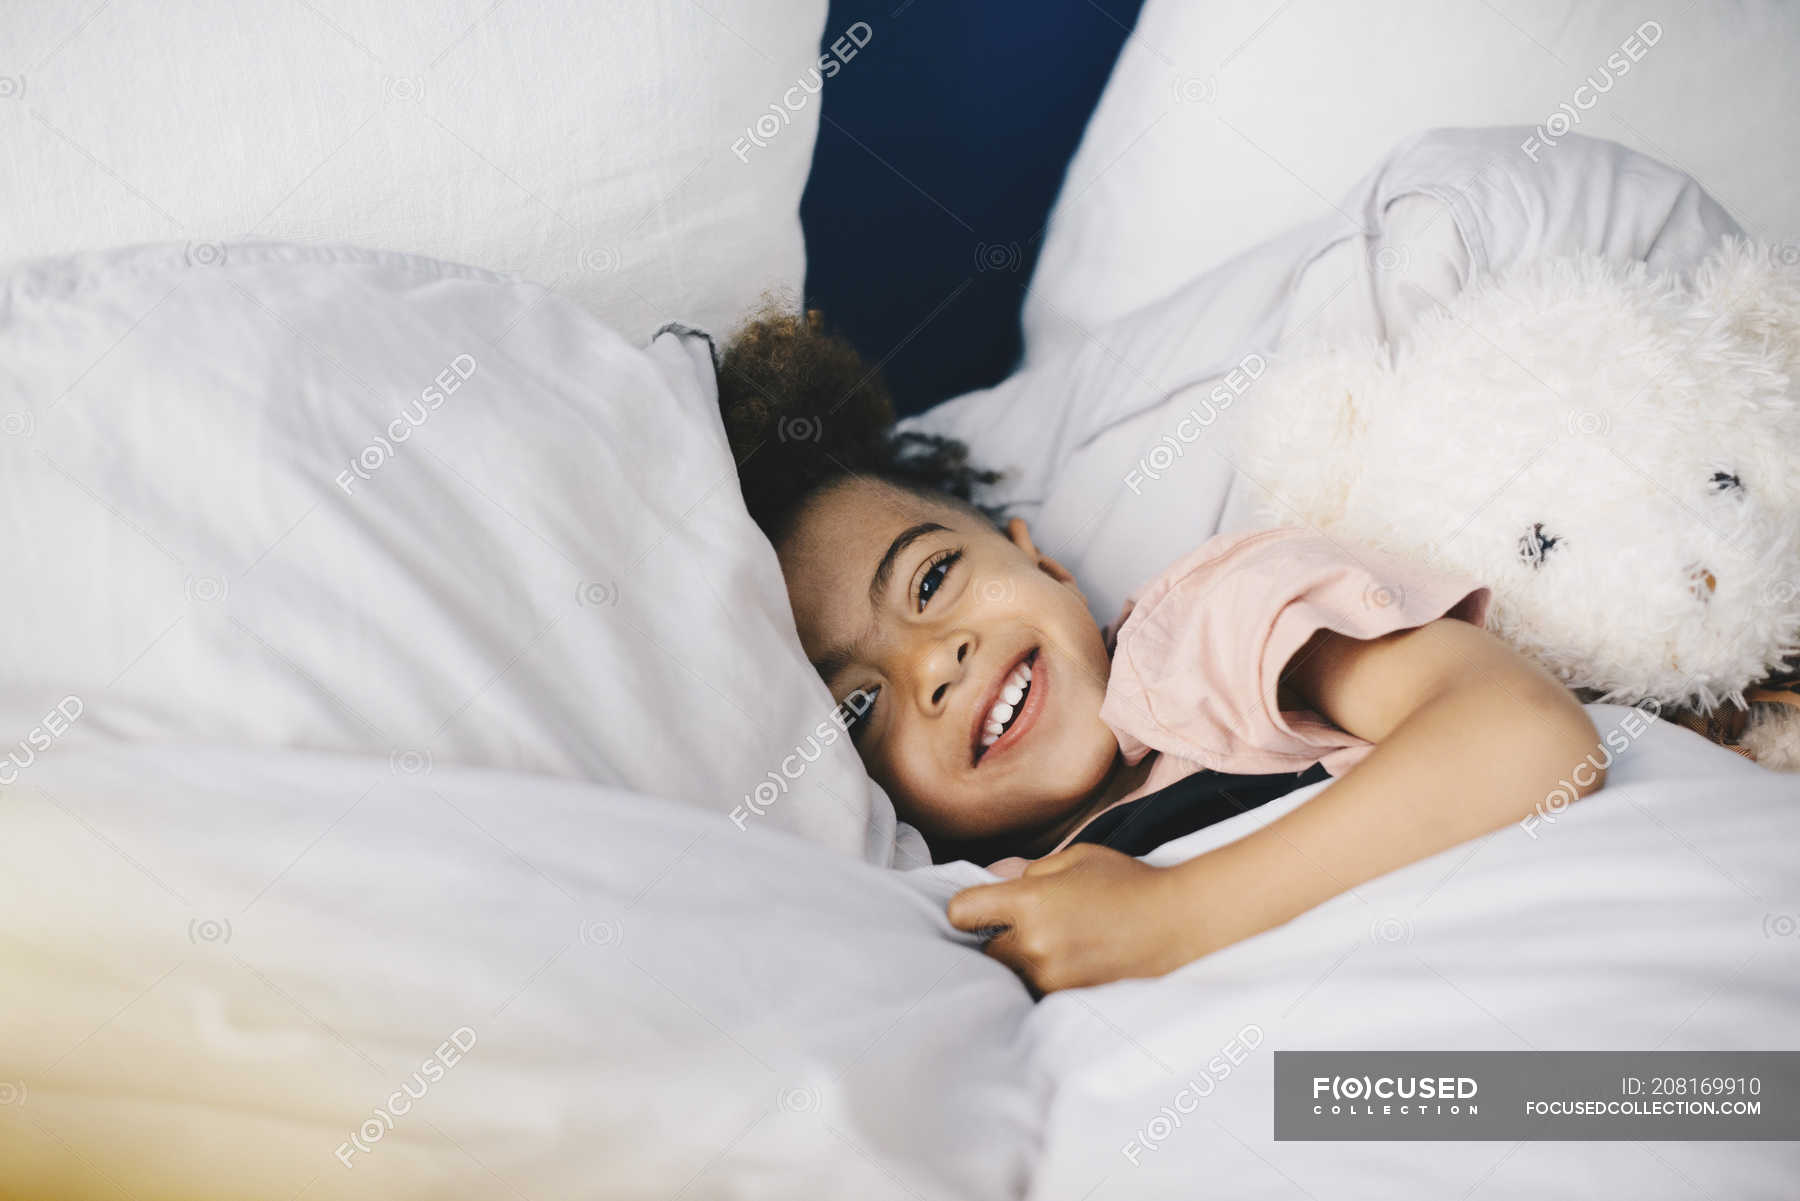 0362e870b Portrait of smiling boy lying with teddy bear on bed at home ...